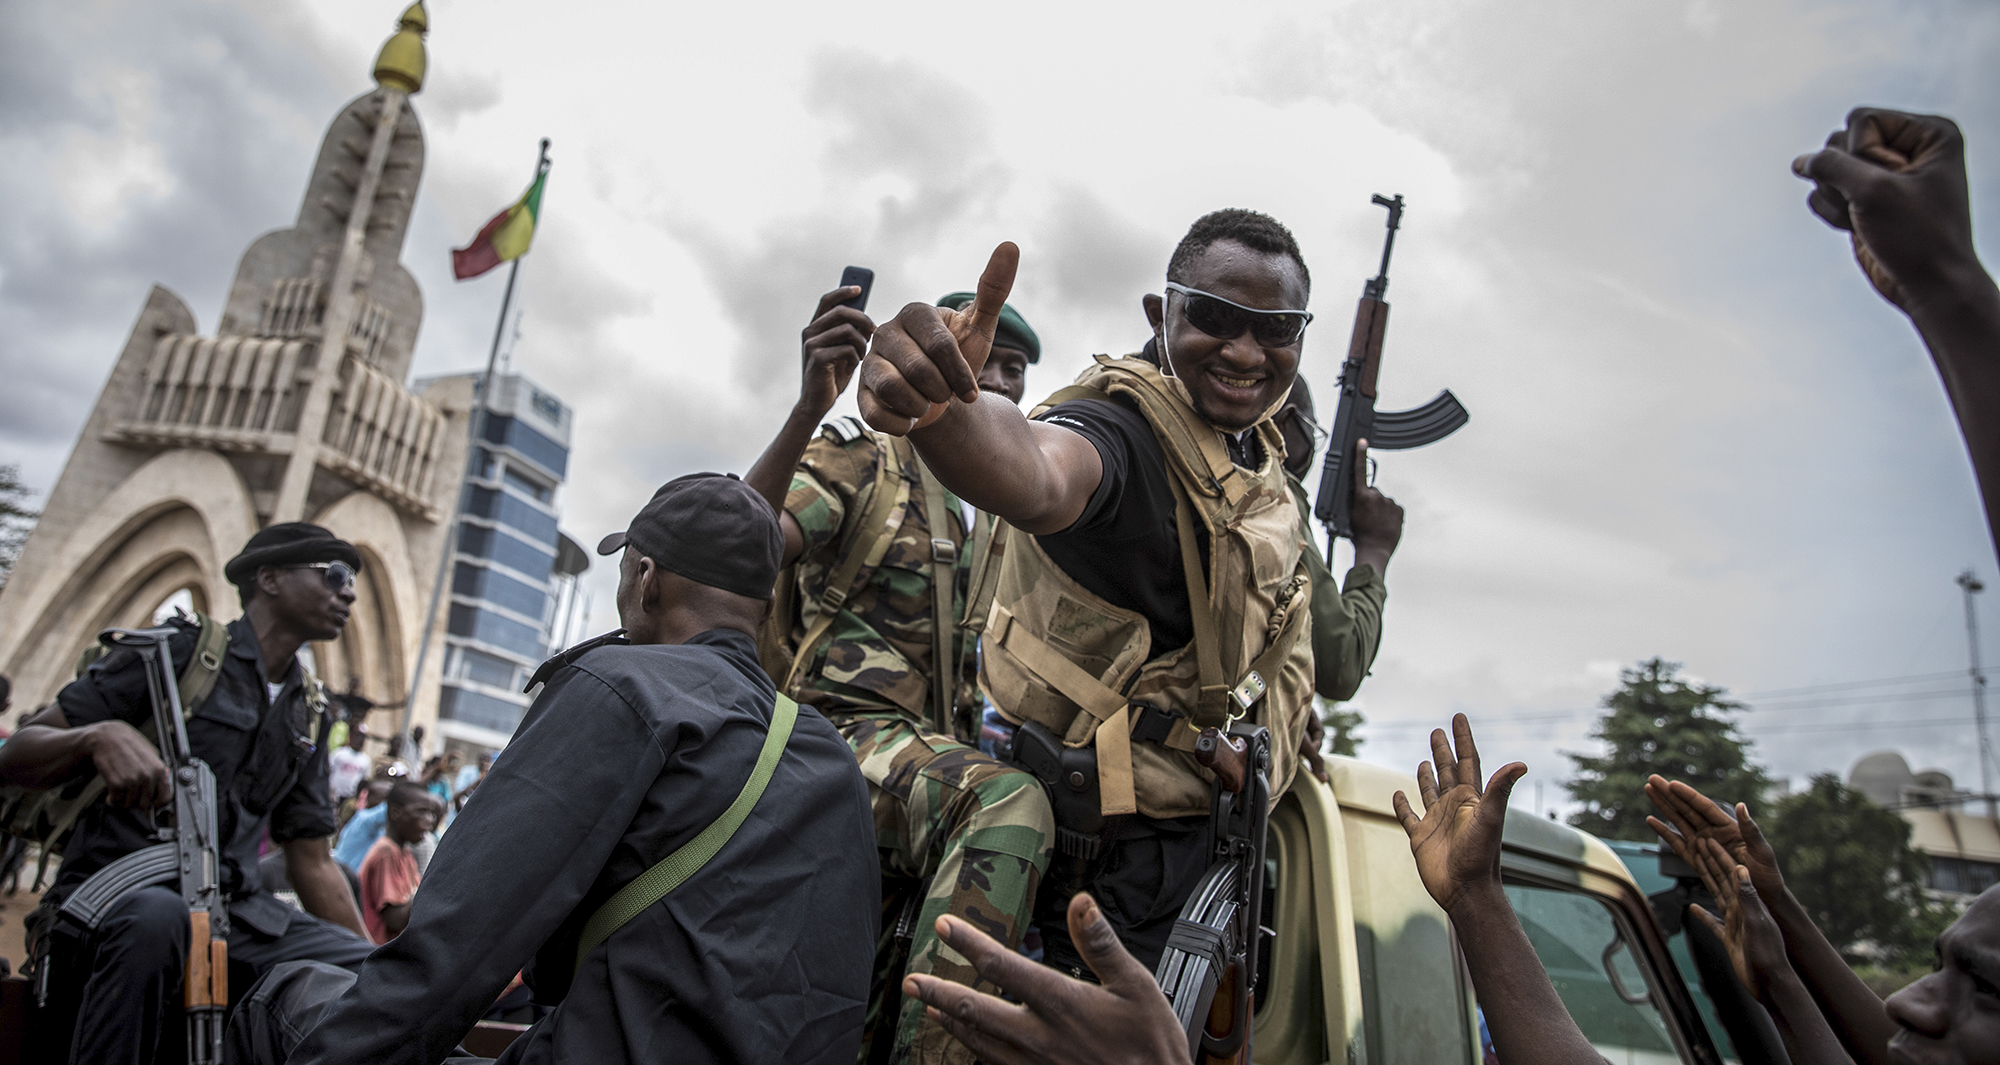 Soldiers after the Mali Coup - Photo EPA-EFE/H.DIAKITE